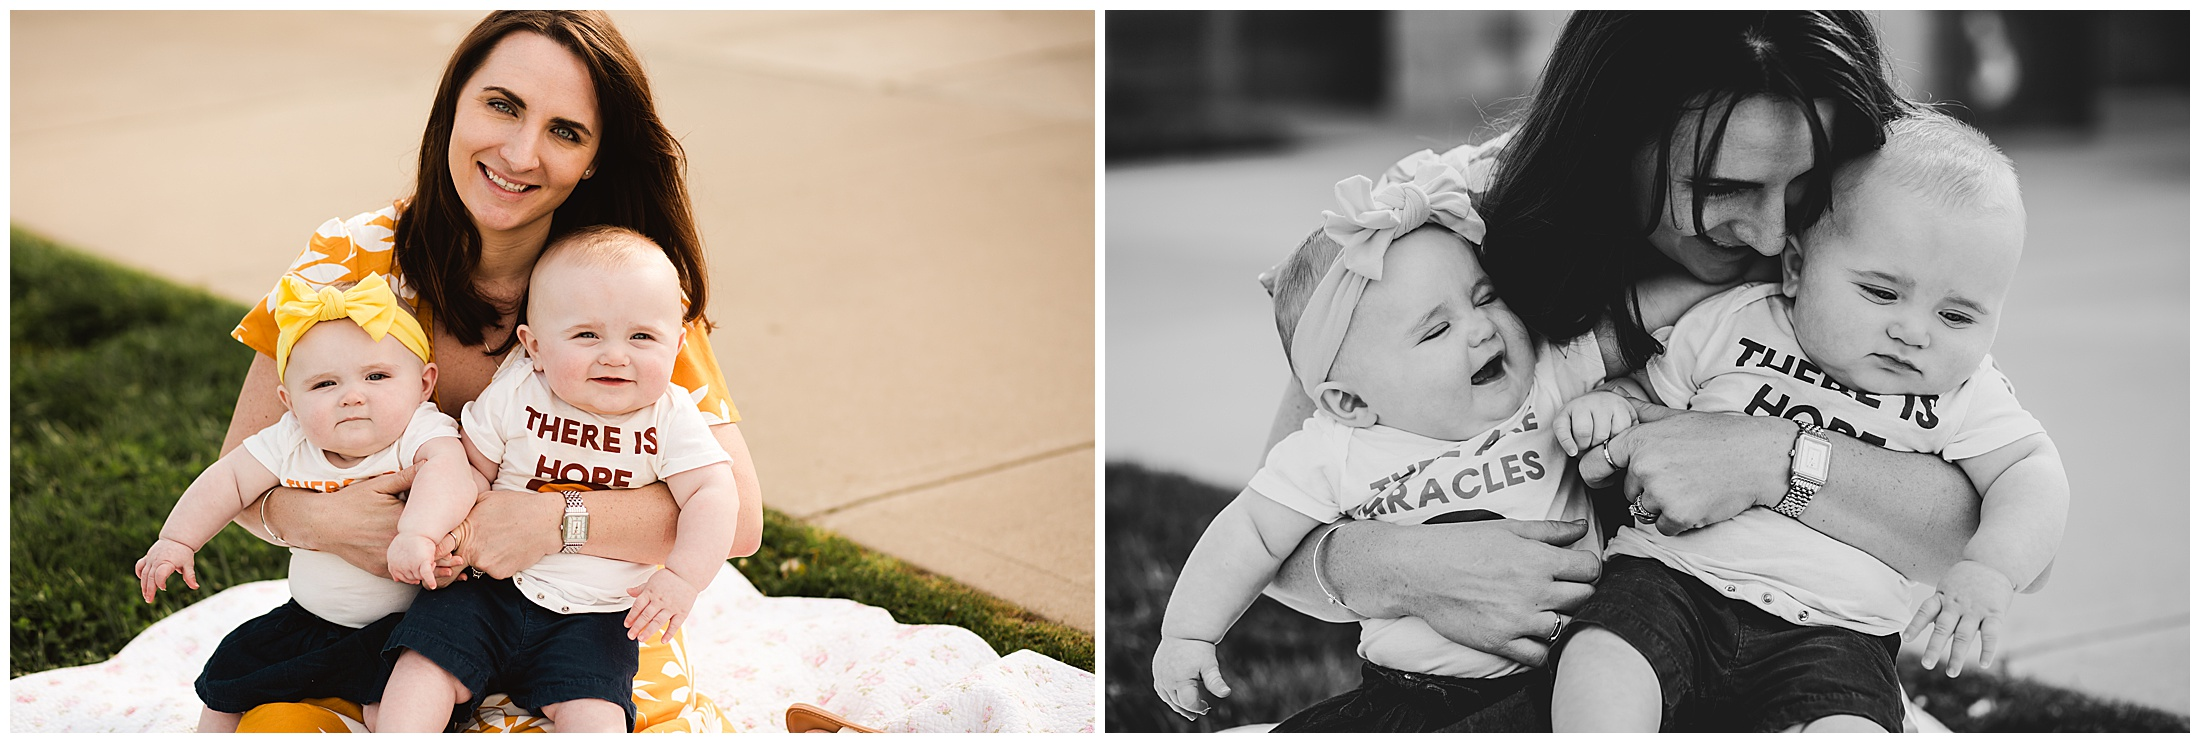 Carmel Indiana Family Photography at Founders Park